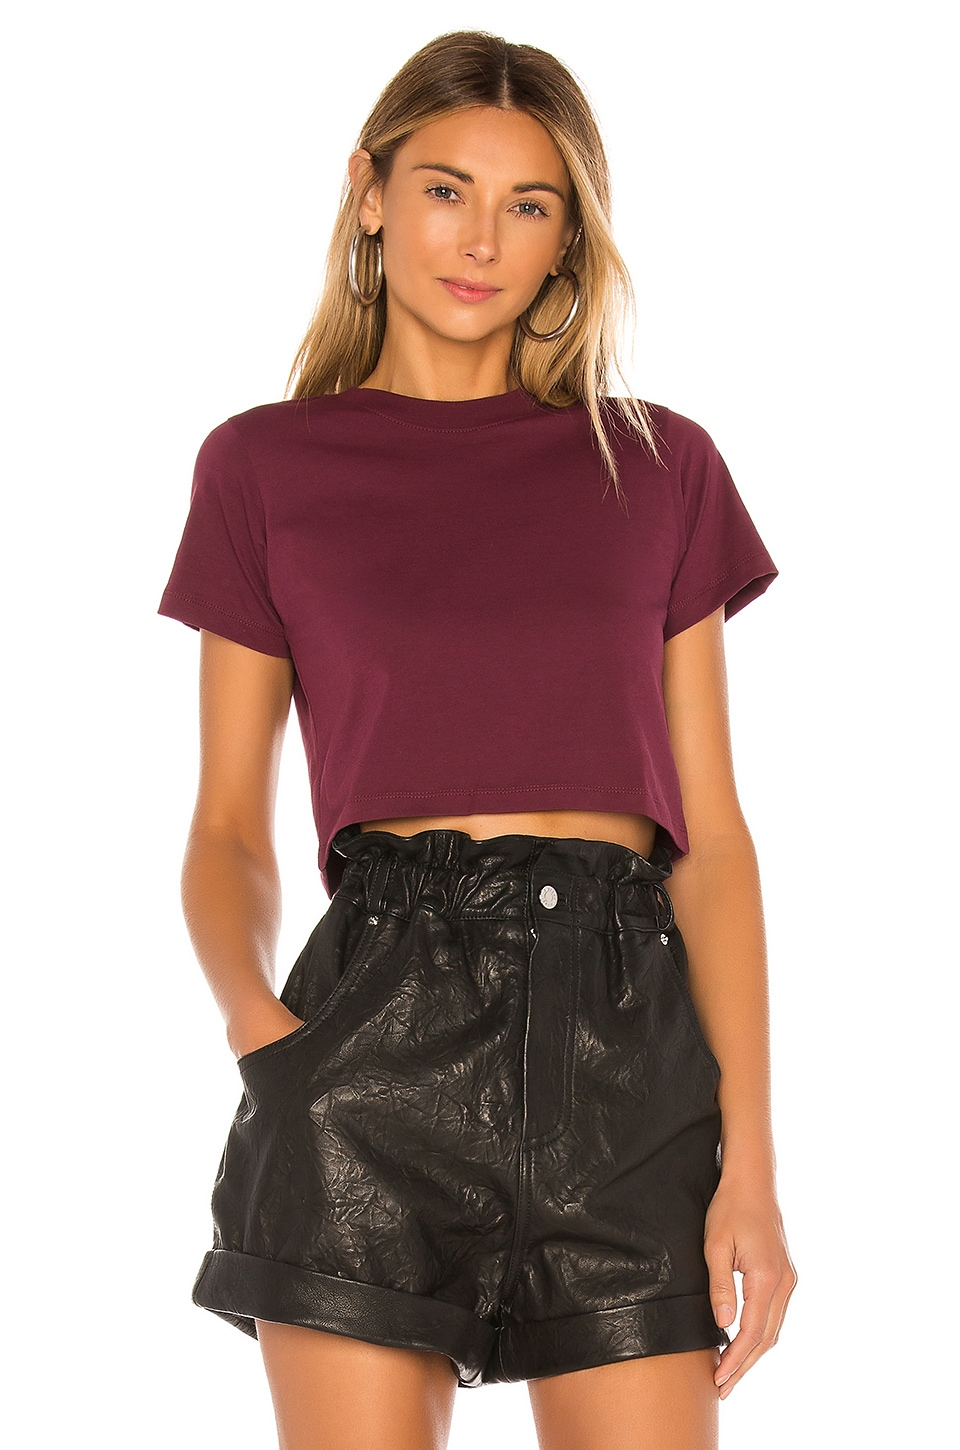 x karla The Baby Tee in Burgundy